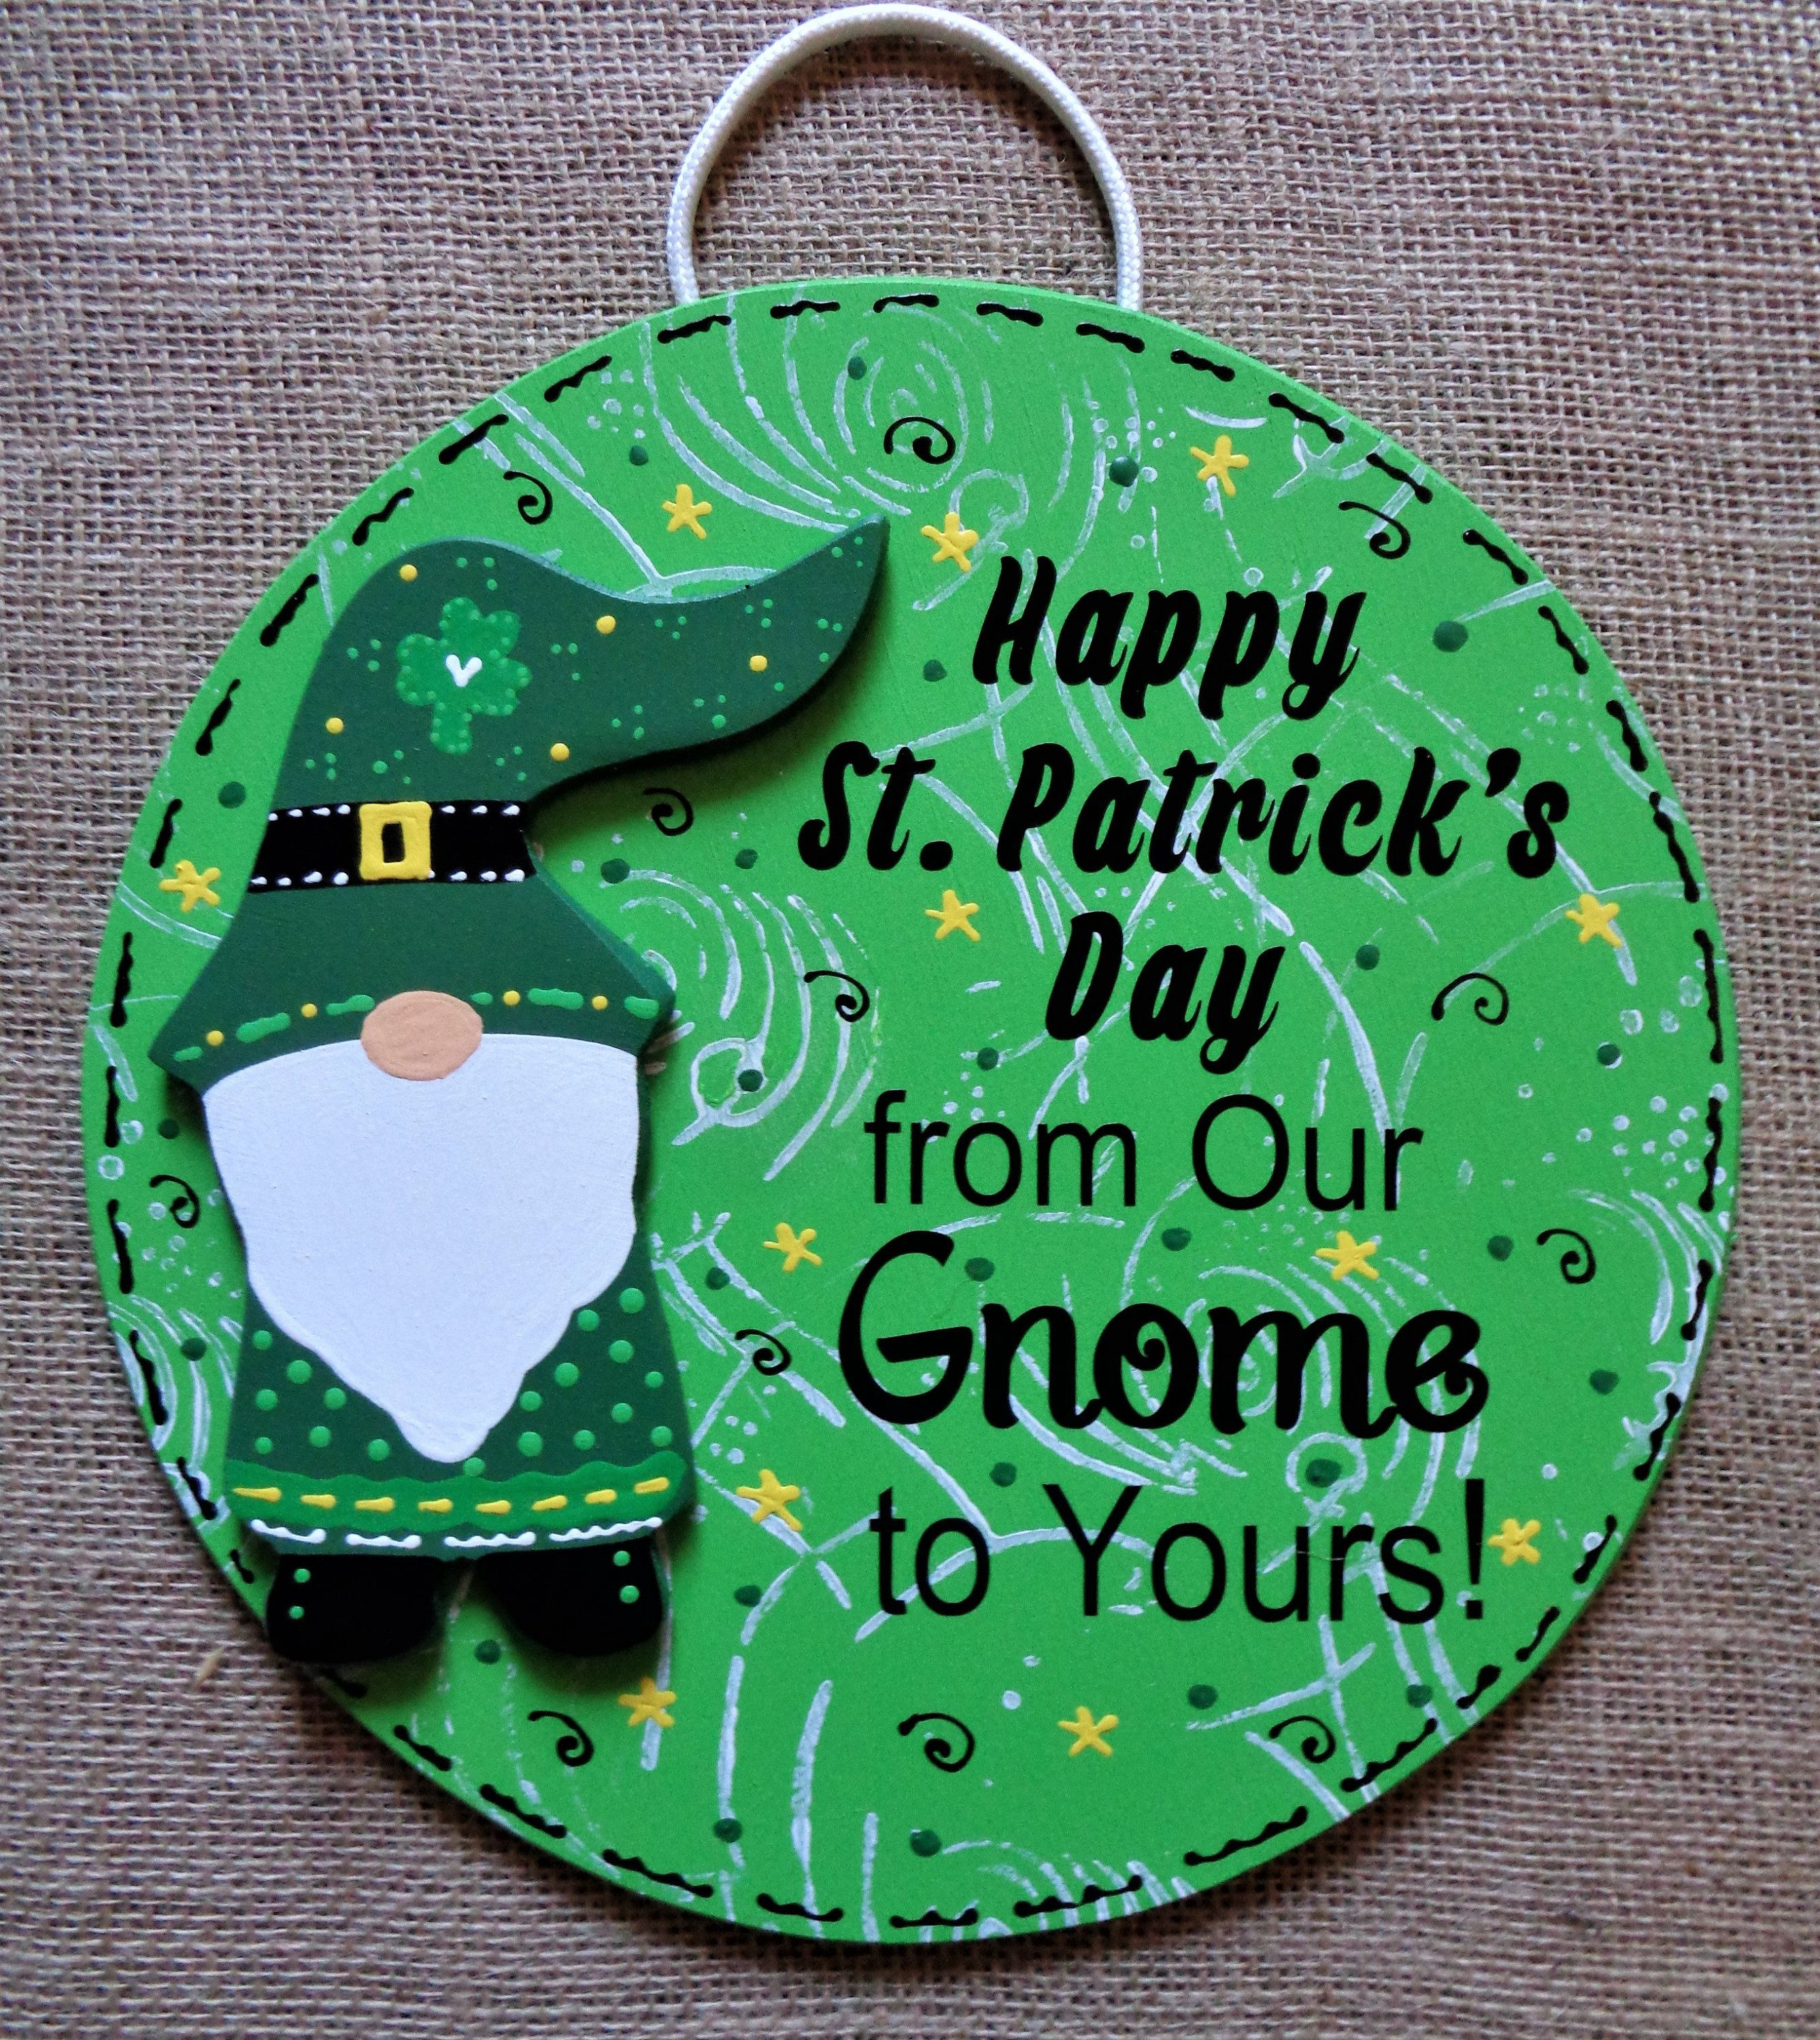 Happy St Patrick S Day From Our Gnome To Yours Sign Wall Door Hanger Plaque Handcrafted Hand Painted Holiday Decor Wood Wooden Door Hanger In 2020 Holiday Decor Wall Signs Handcraft